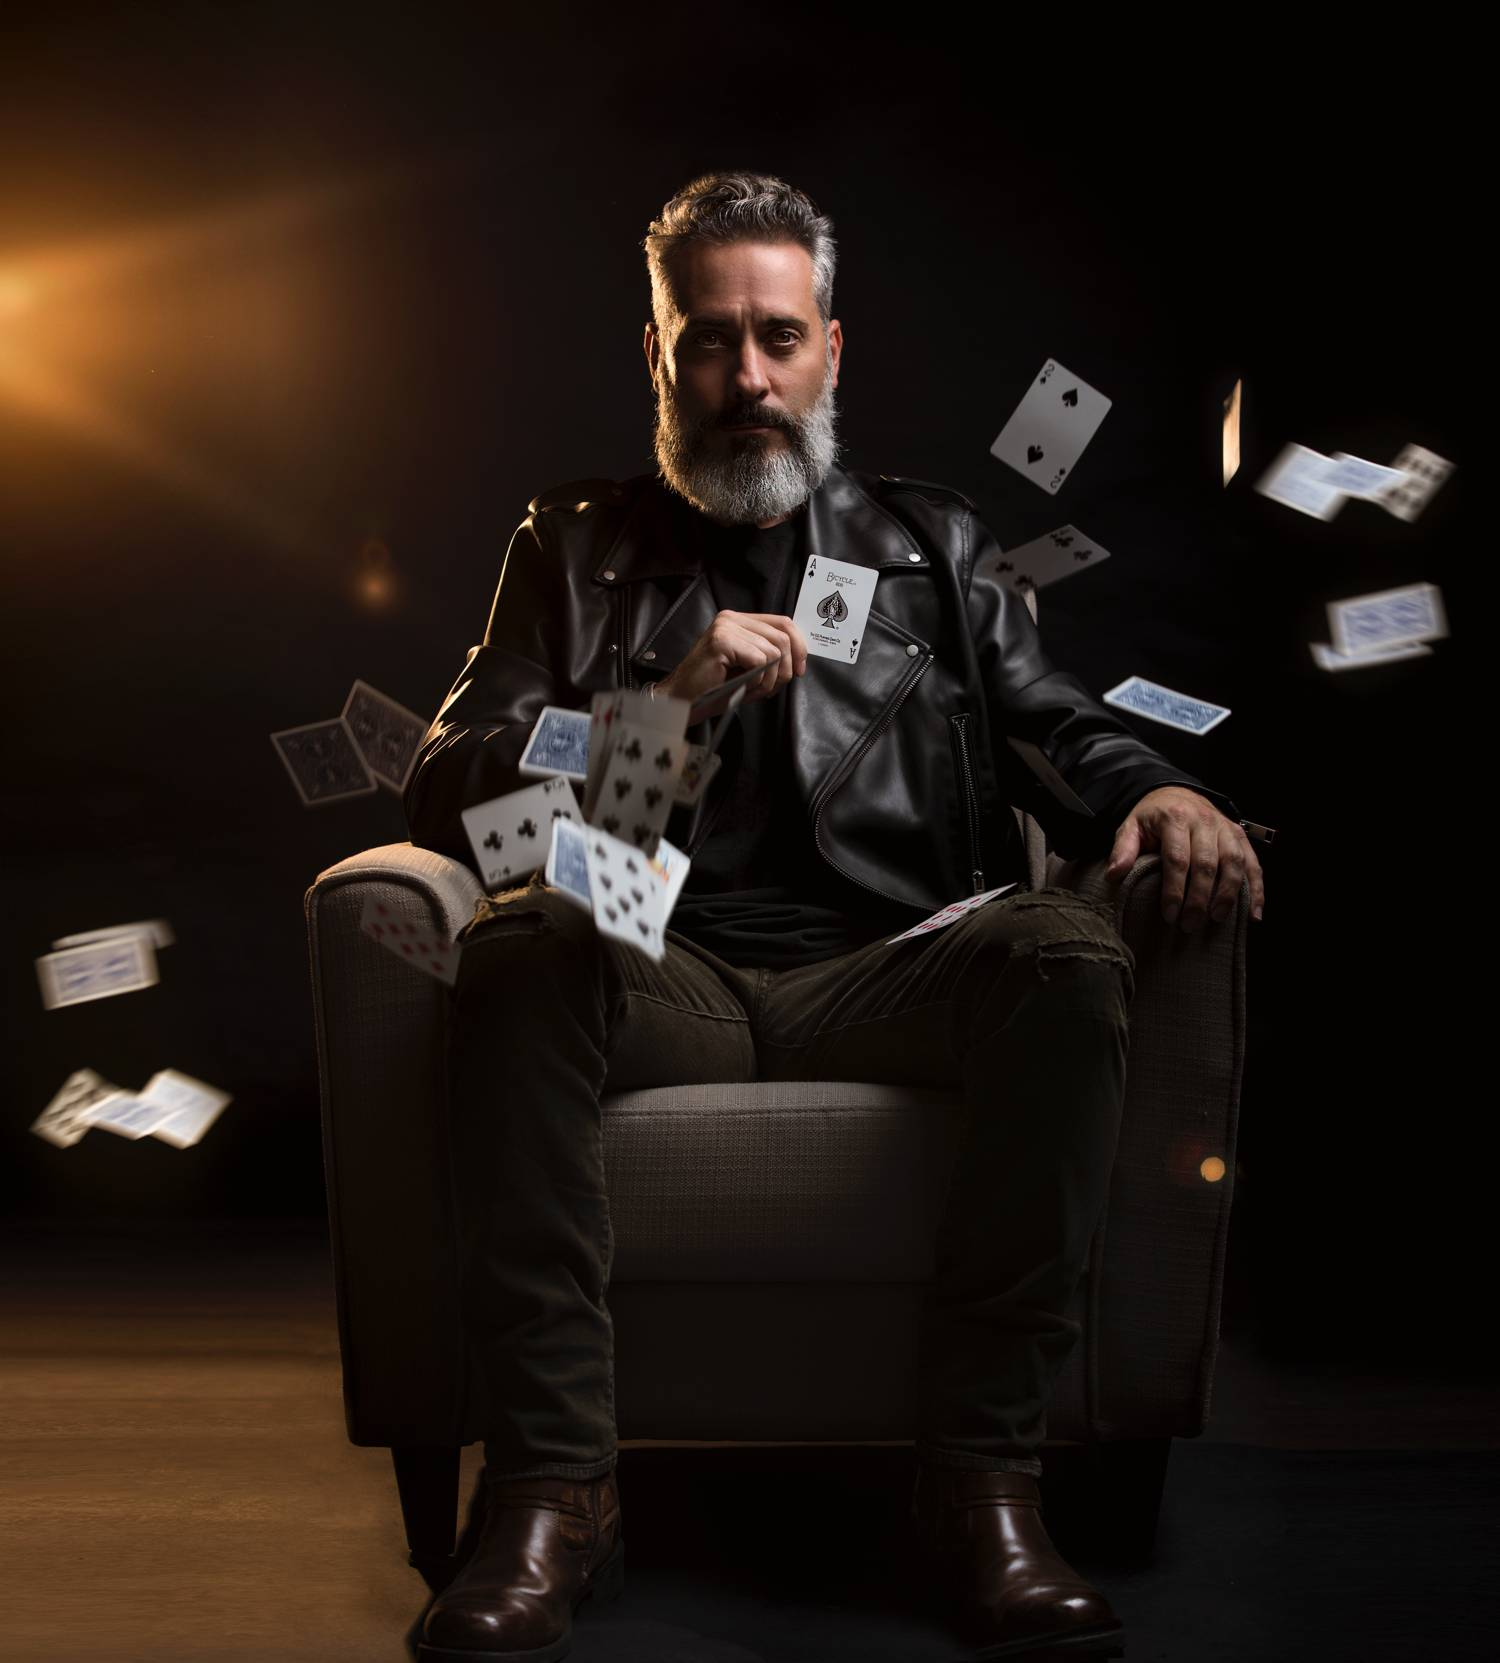 In this styled tribute photograph by Alexander Worth of Jawfox Photography, a man cosplays Negan from The Walking Dead, wearing Alton Brown clothing and seated in a leather chair as playing cards fall down around him.